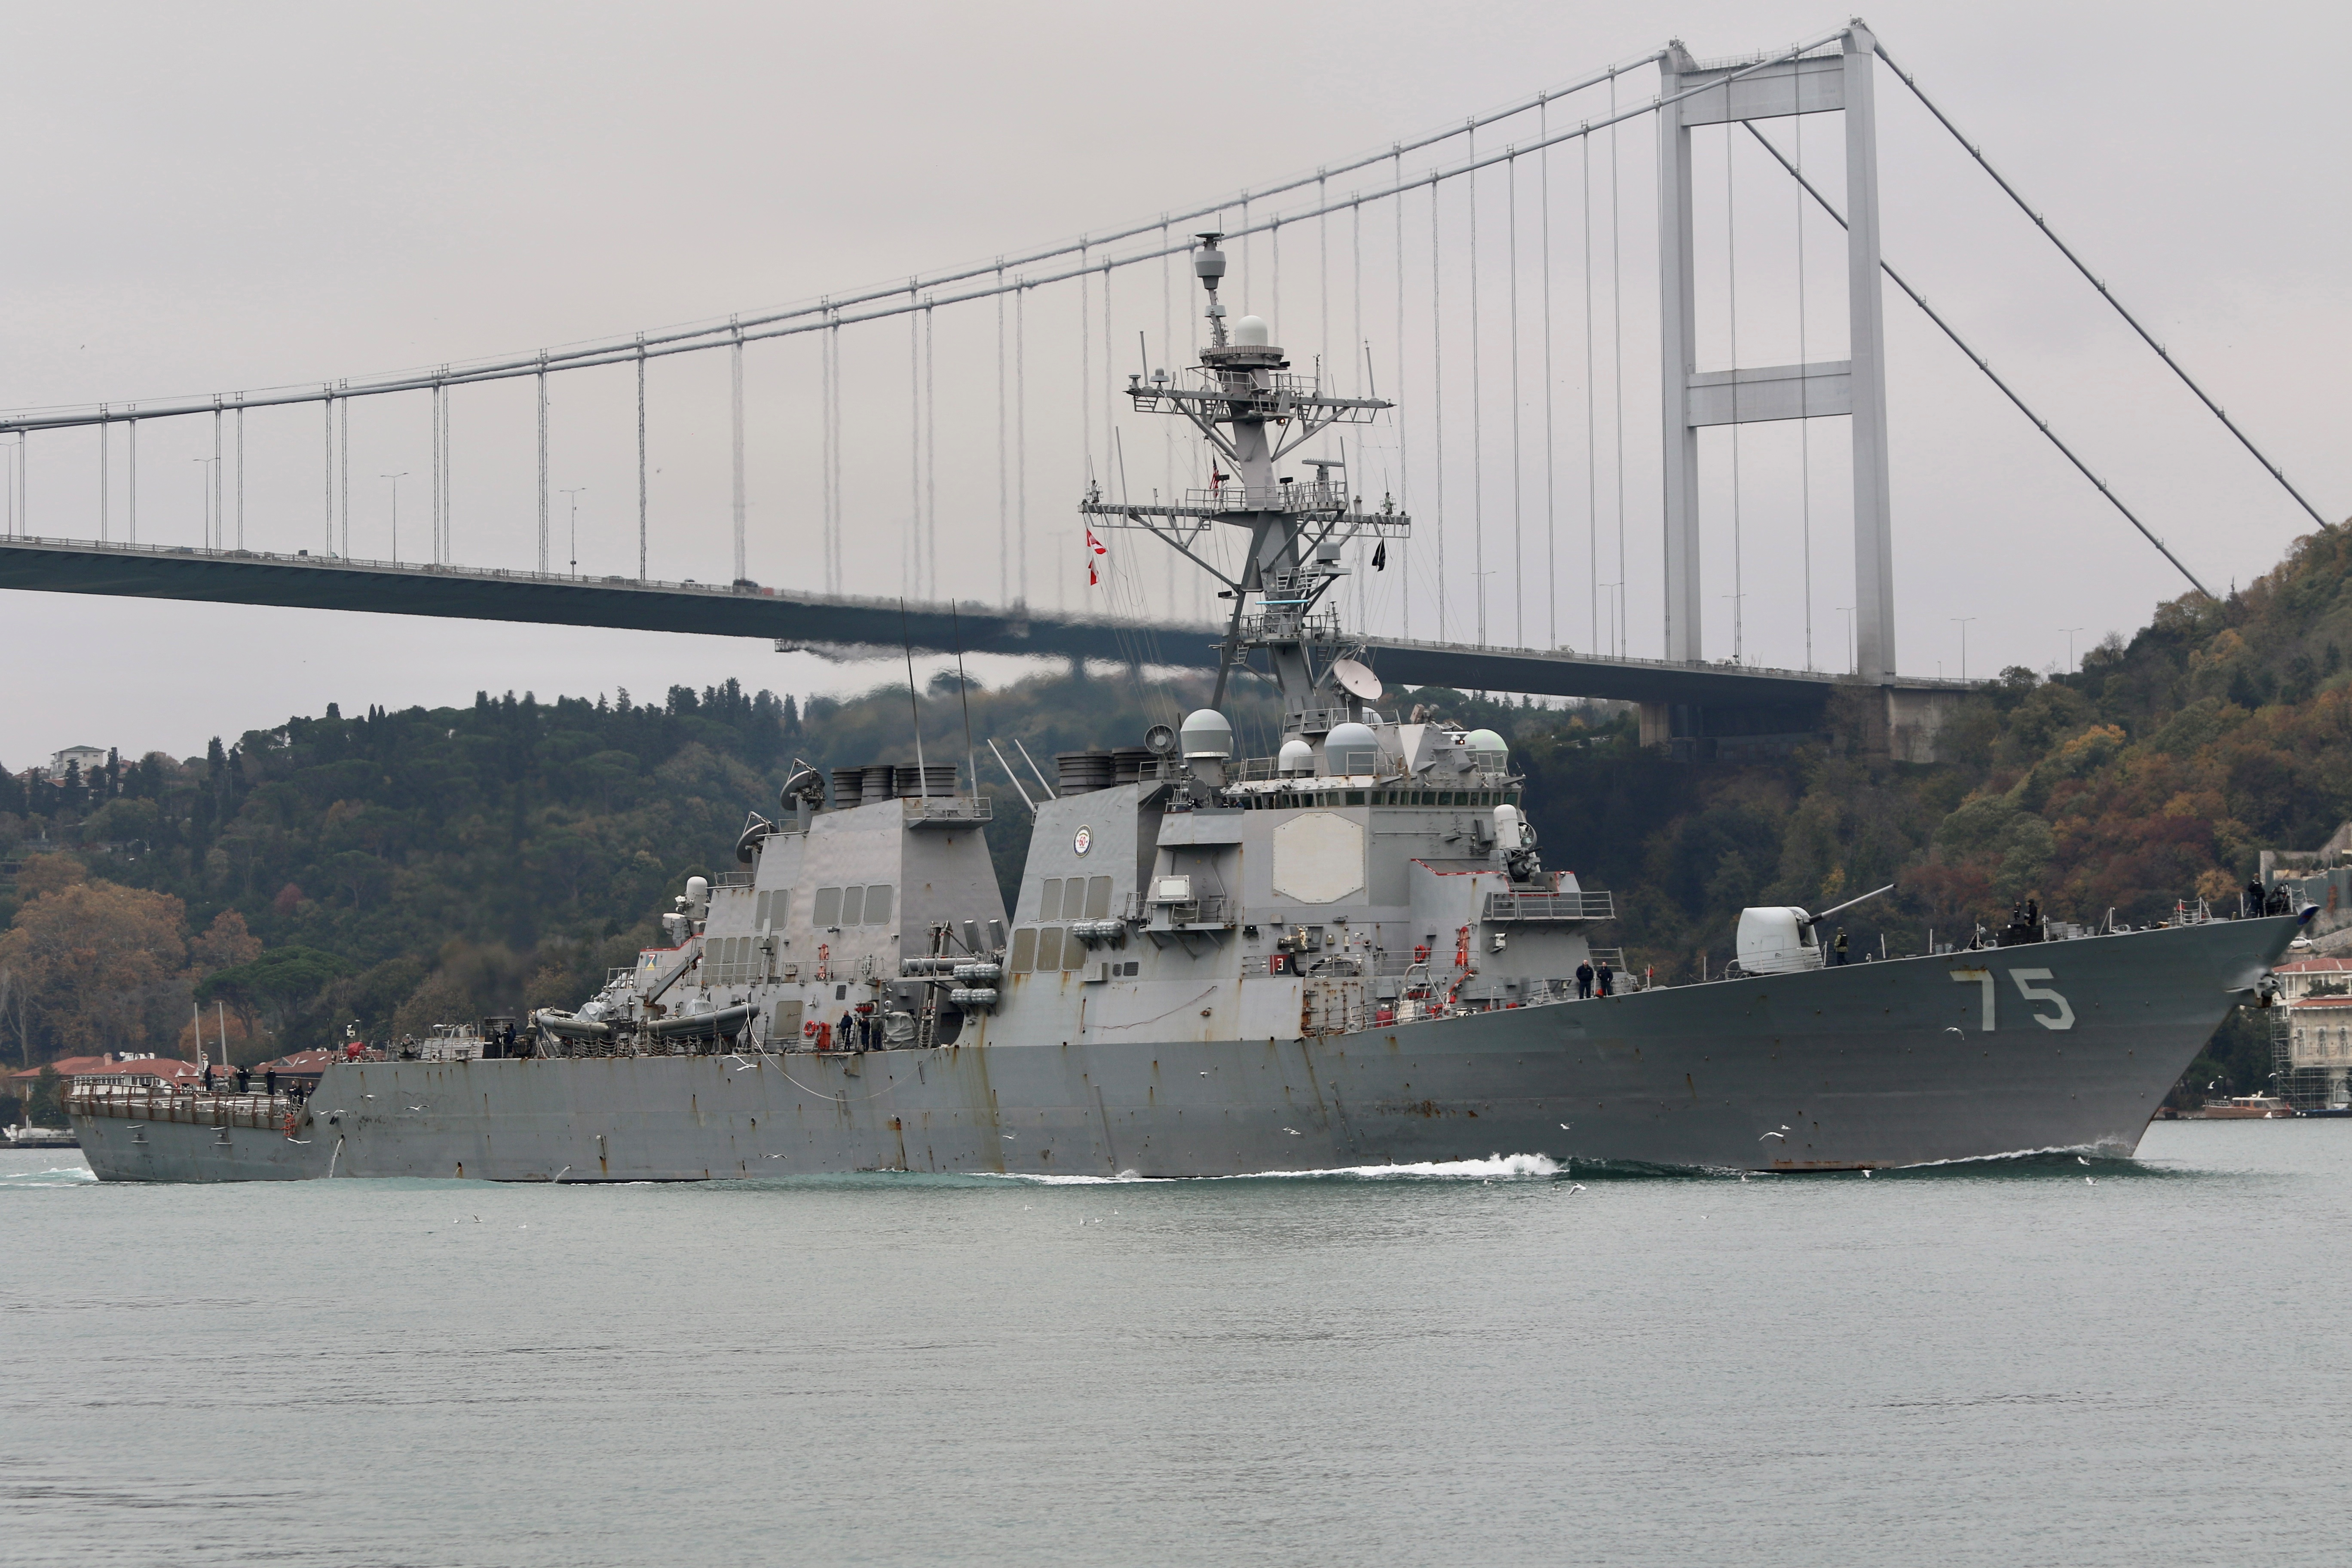 The U.S. Navy Arleigh Burke-class guided-missile destroyer USS Donald Cook (DDG 75) sets sail in the Bosphorus, on its way to the Black Sea, in Istanbul, Turkey December 2, 2020.  REUTERS/Yoruk Isik